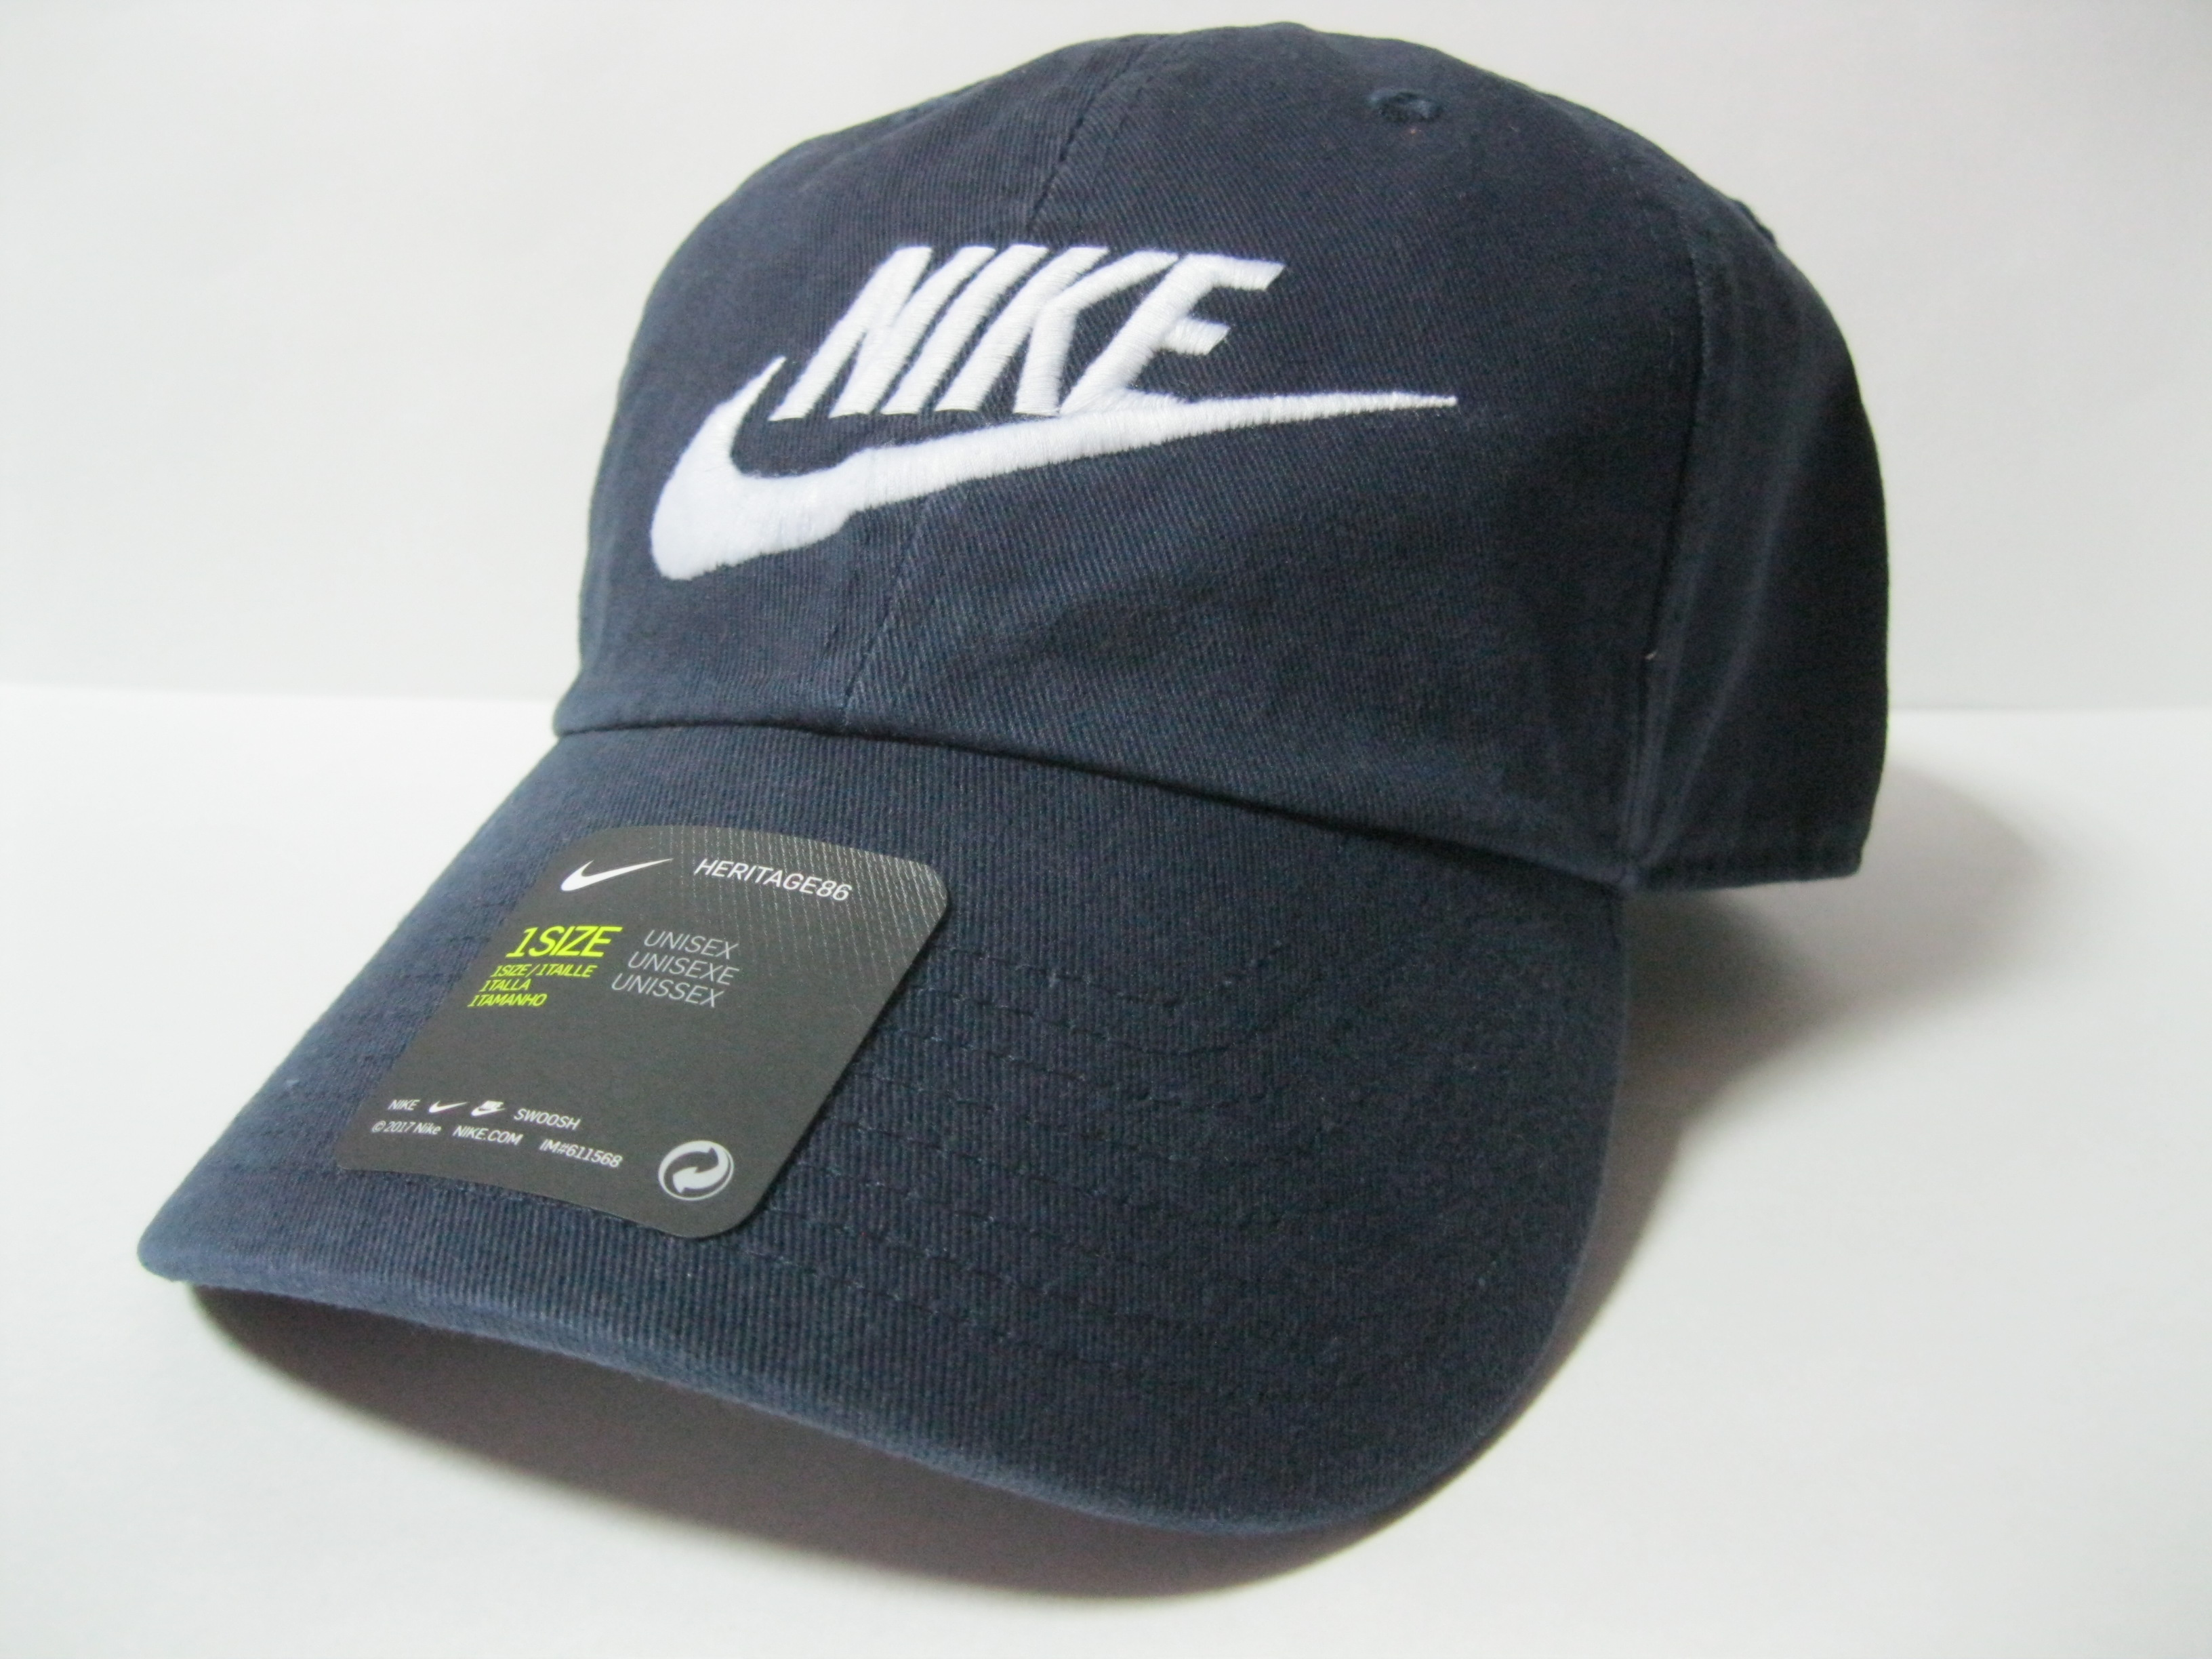 90652011 Nike Futura Washed Heritage Cap Blue | Grailed